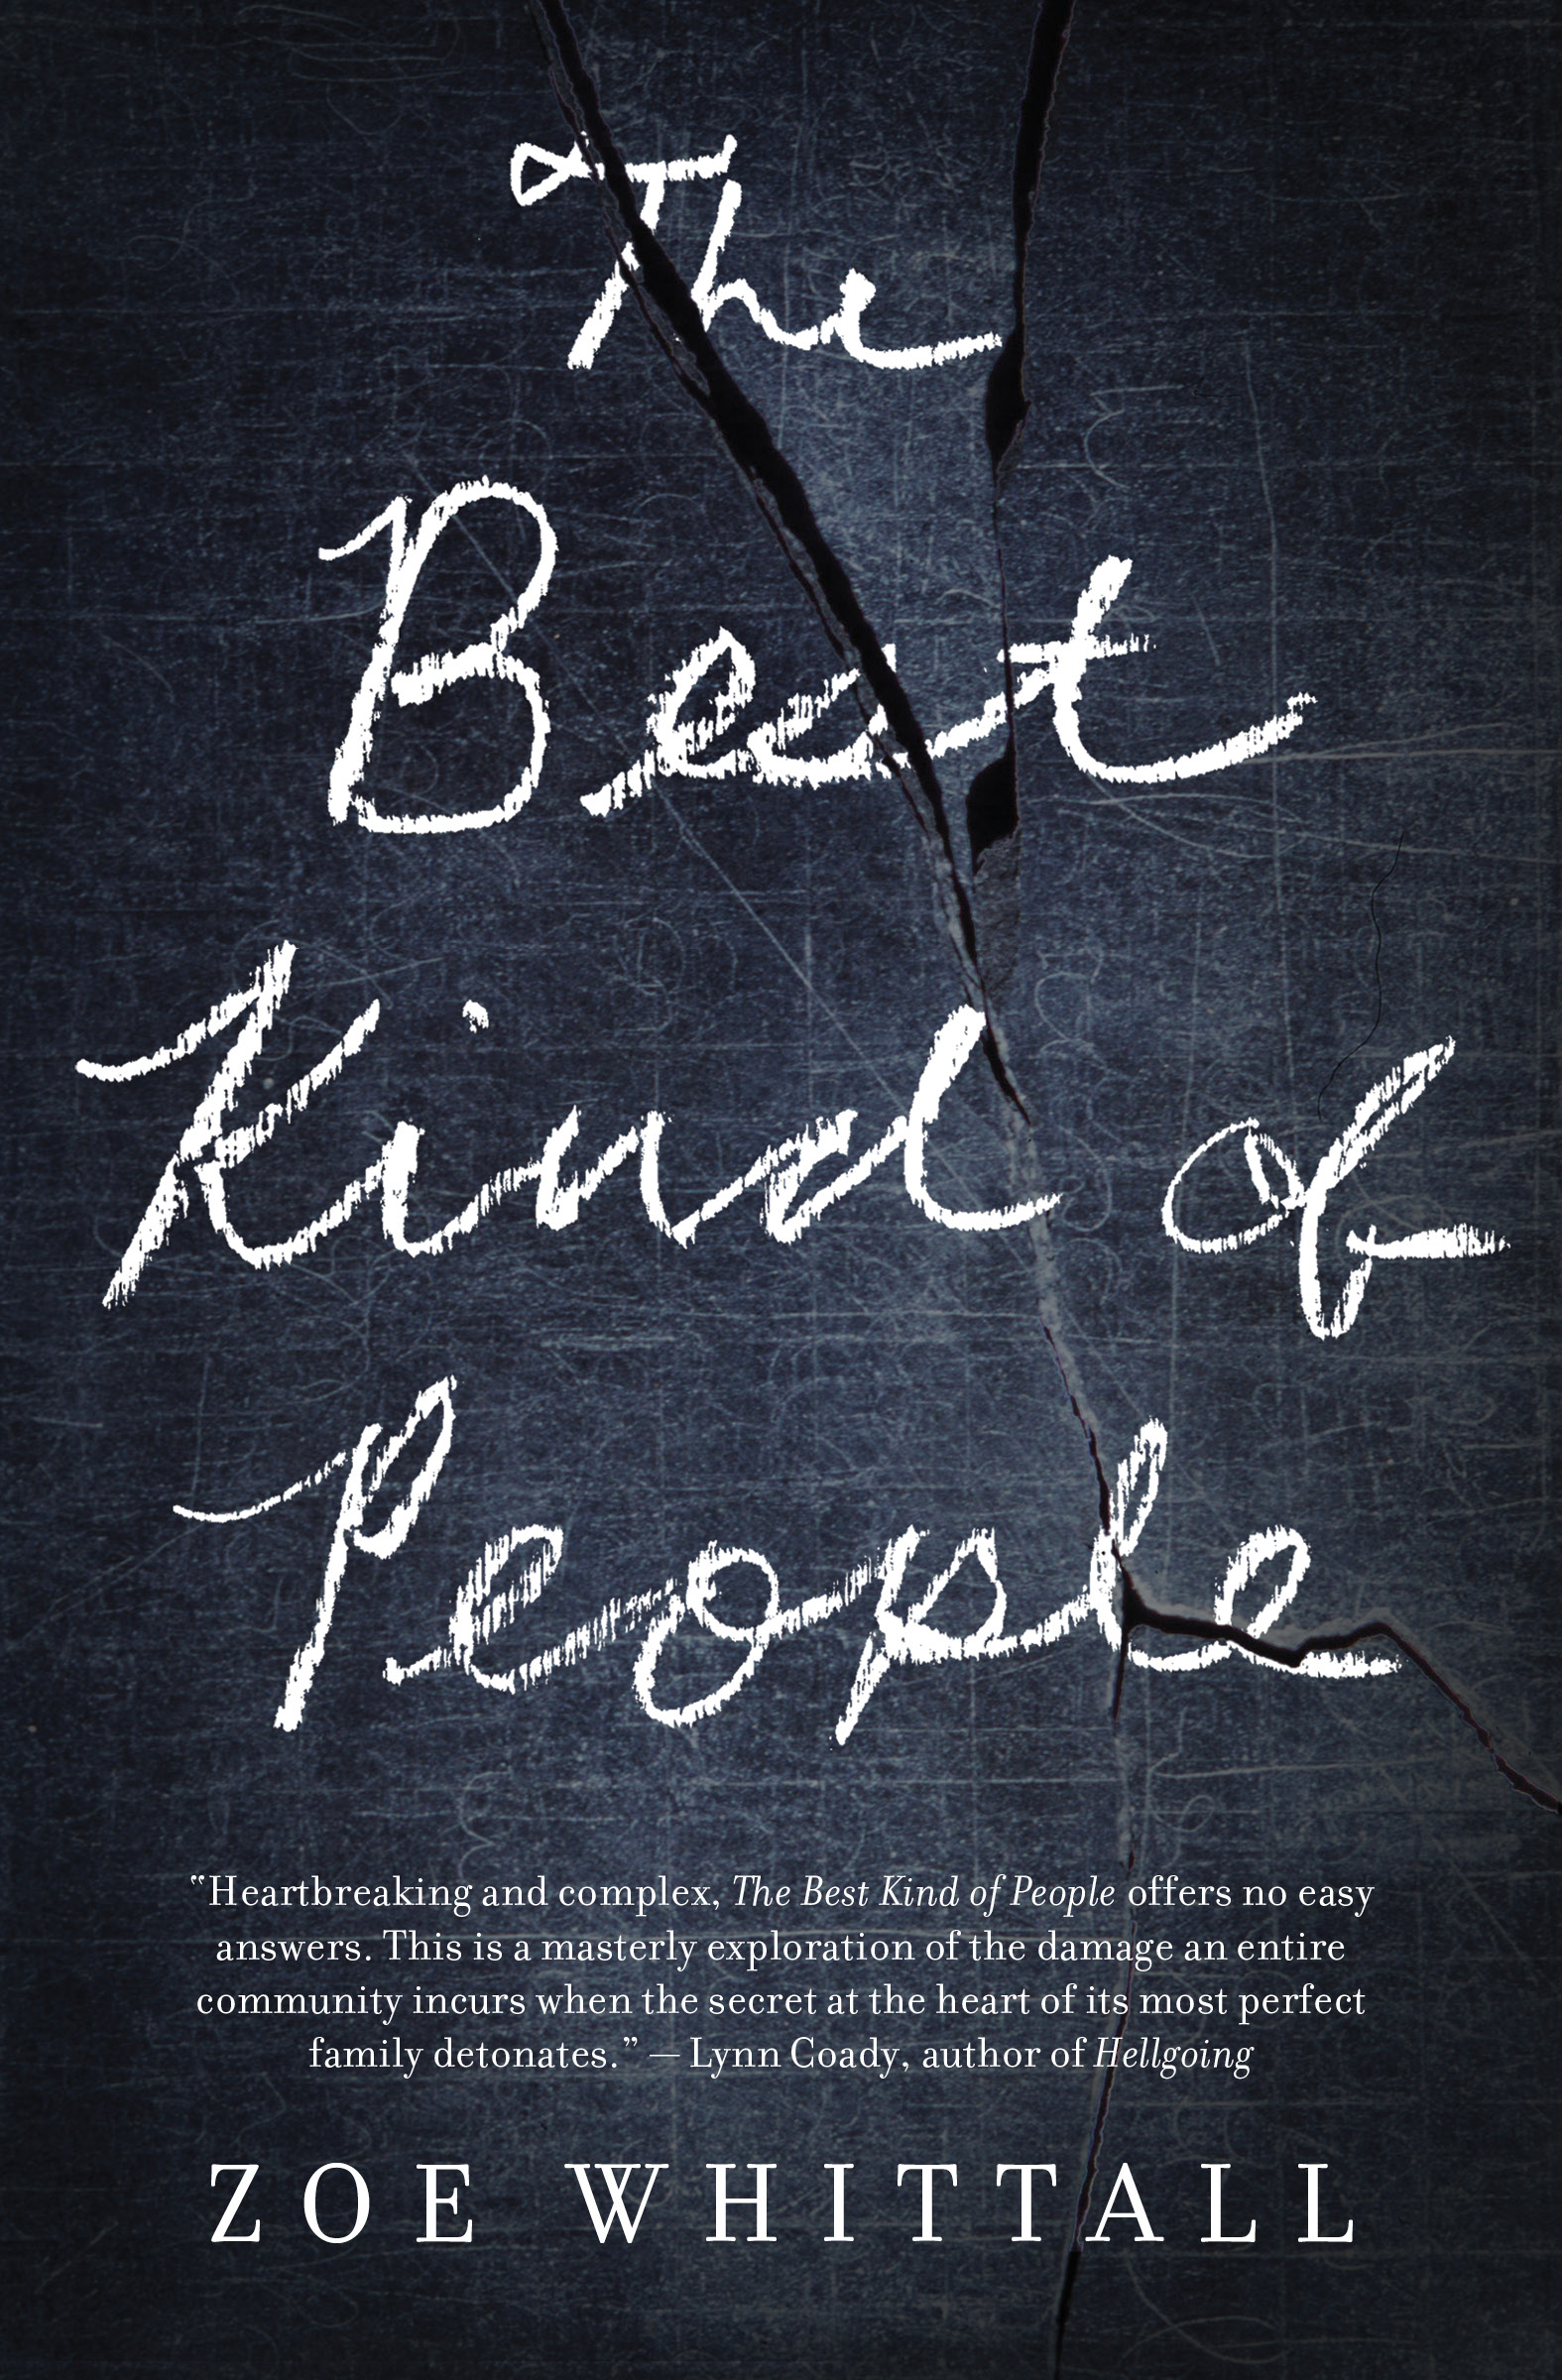 Zoe Whittall.  The Best Kind of People . House of Anansi Press. $22.95, 384 pp., ISBN: 9781770899421